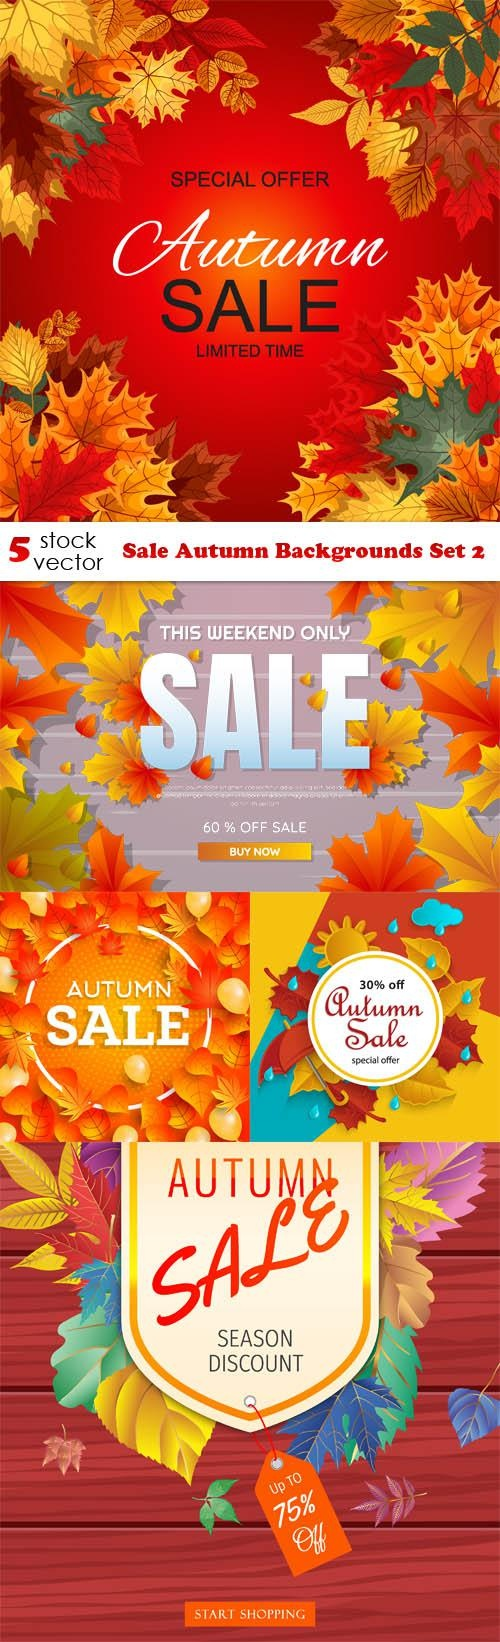 Sale Autumn Backgrounds Set 2 ((aitff (11 files)